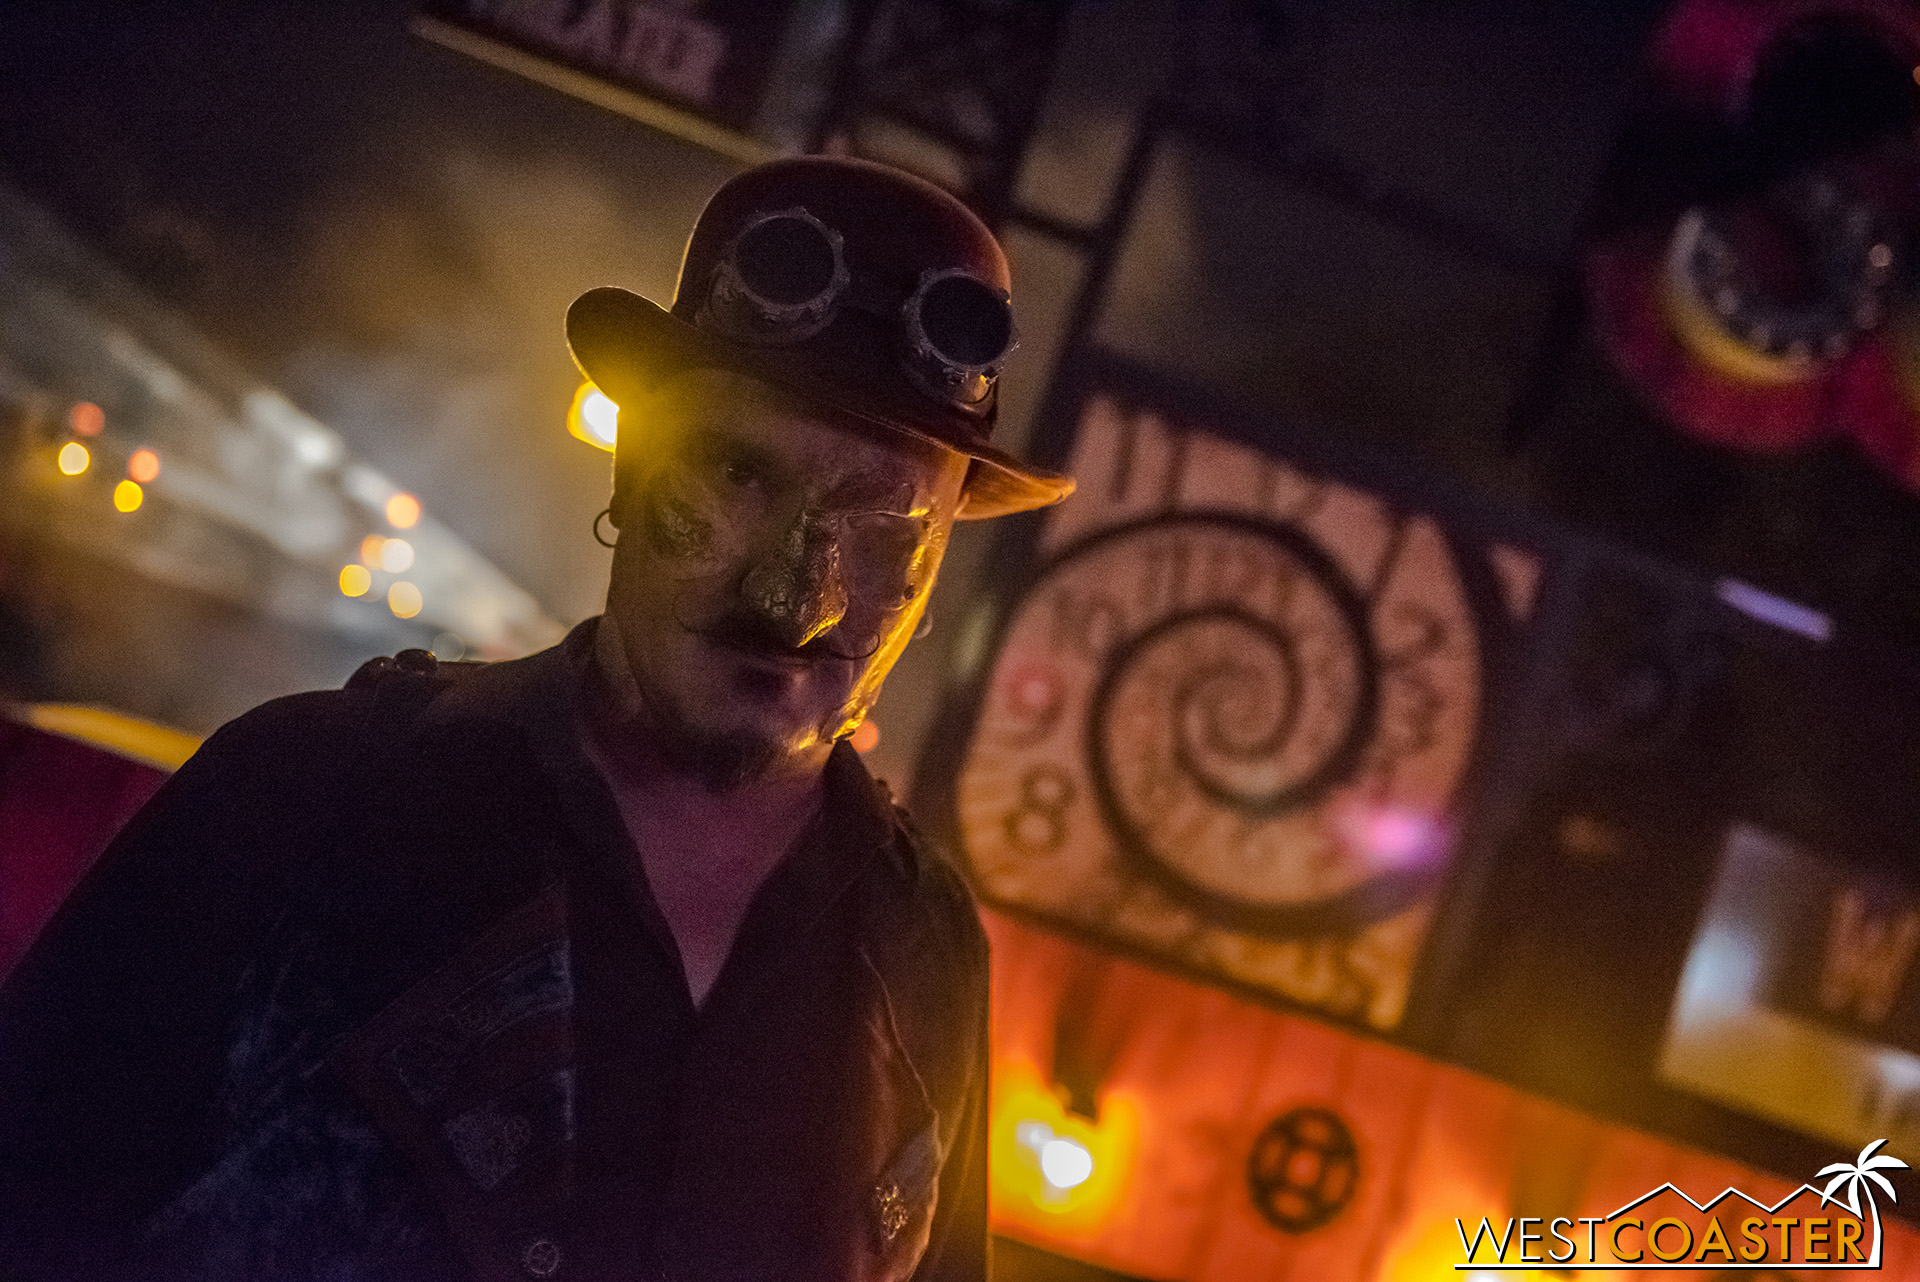 A haunted steampunk look pervades TERRORtory Twisted.